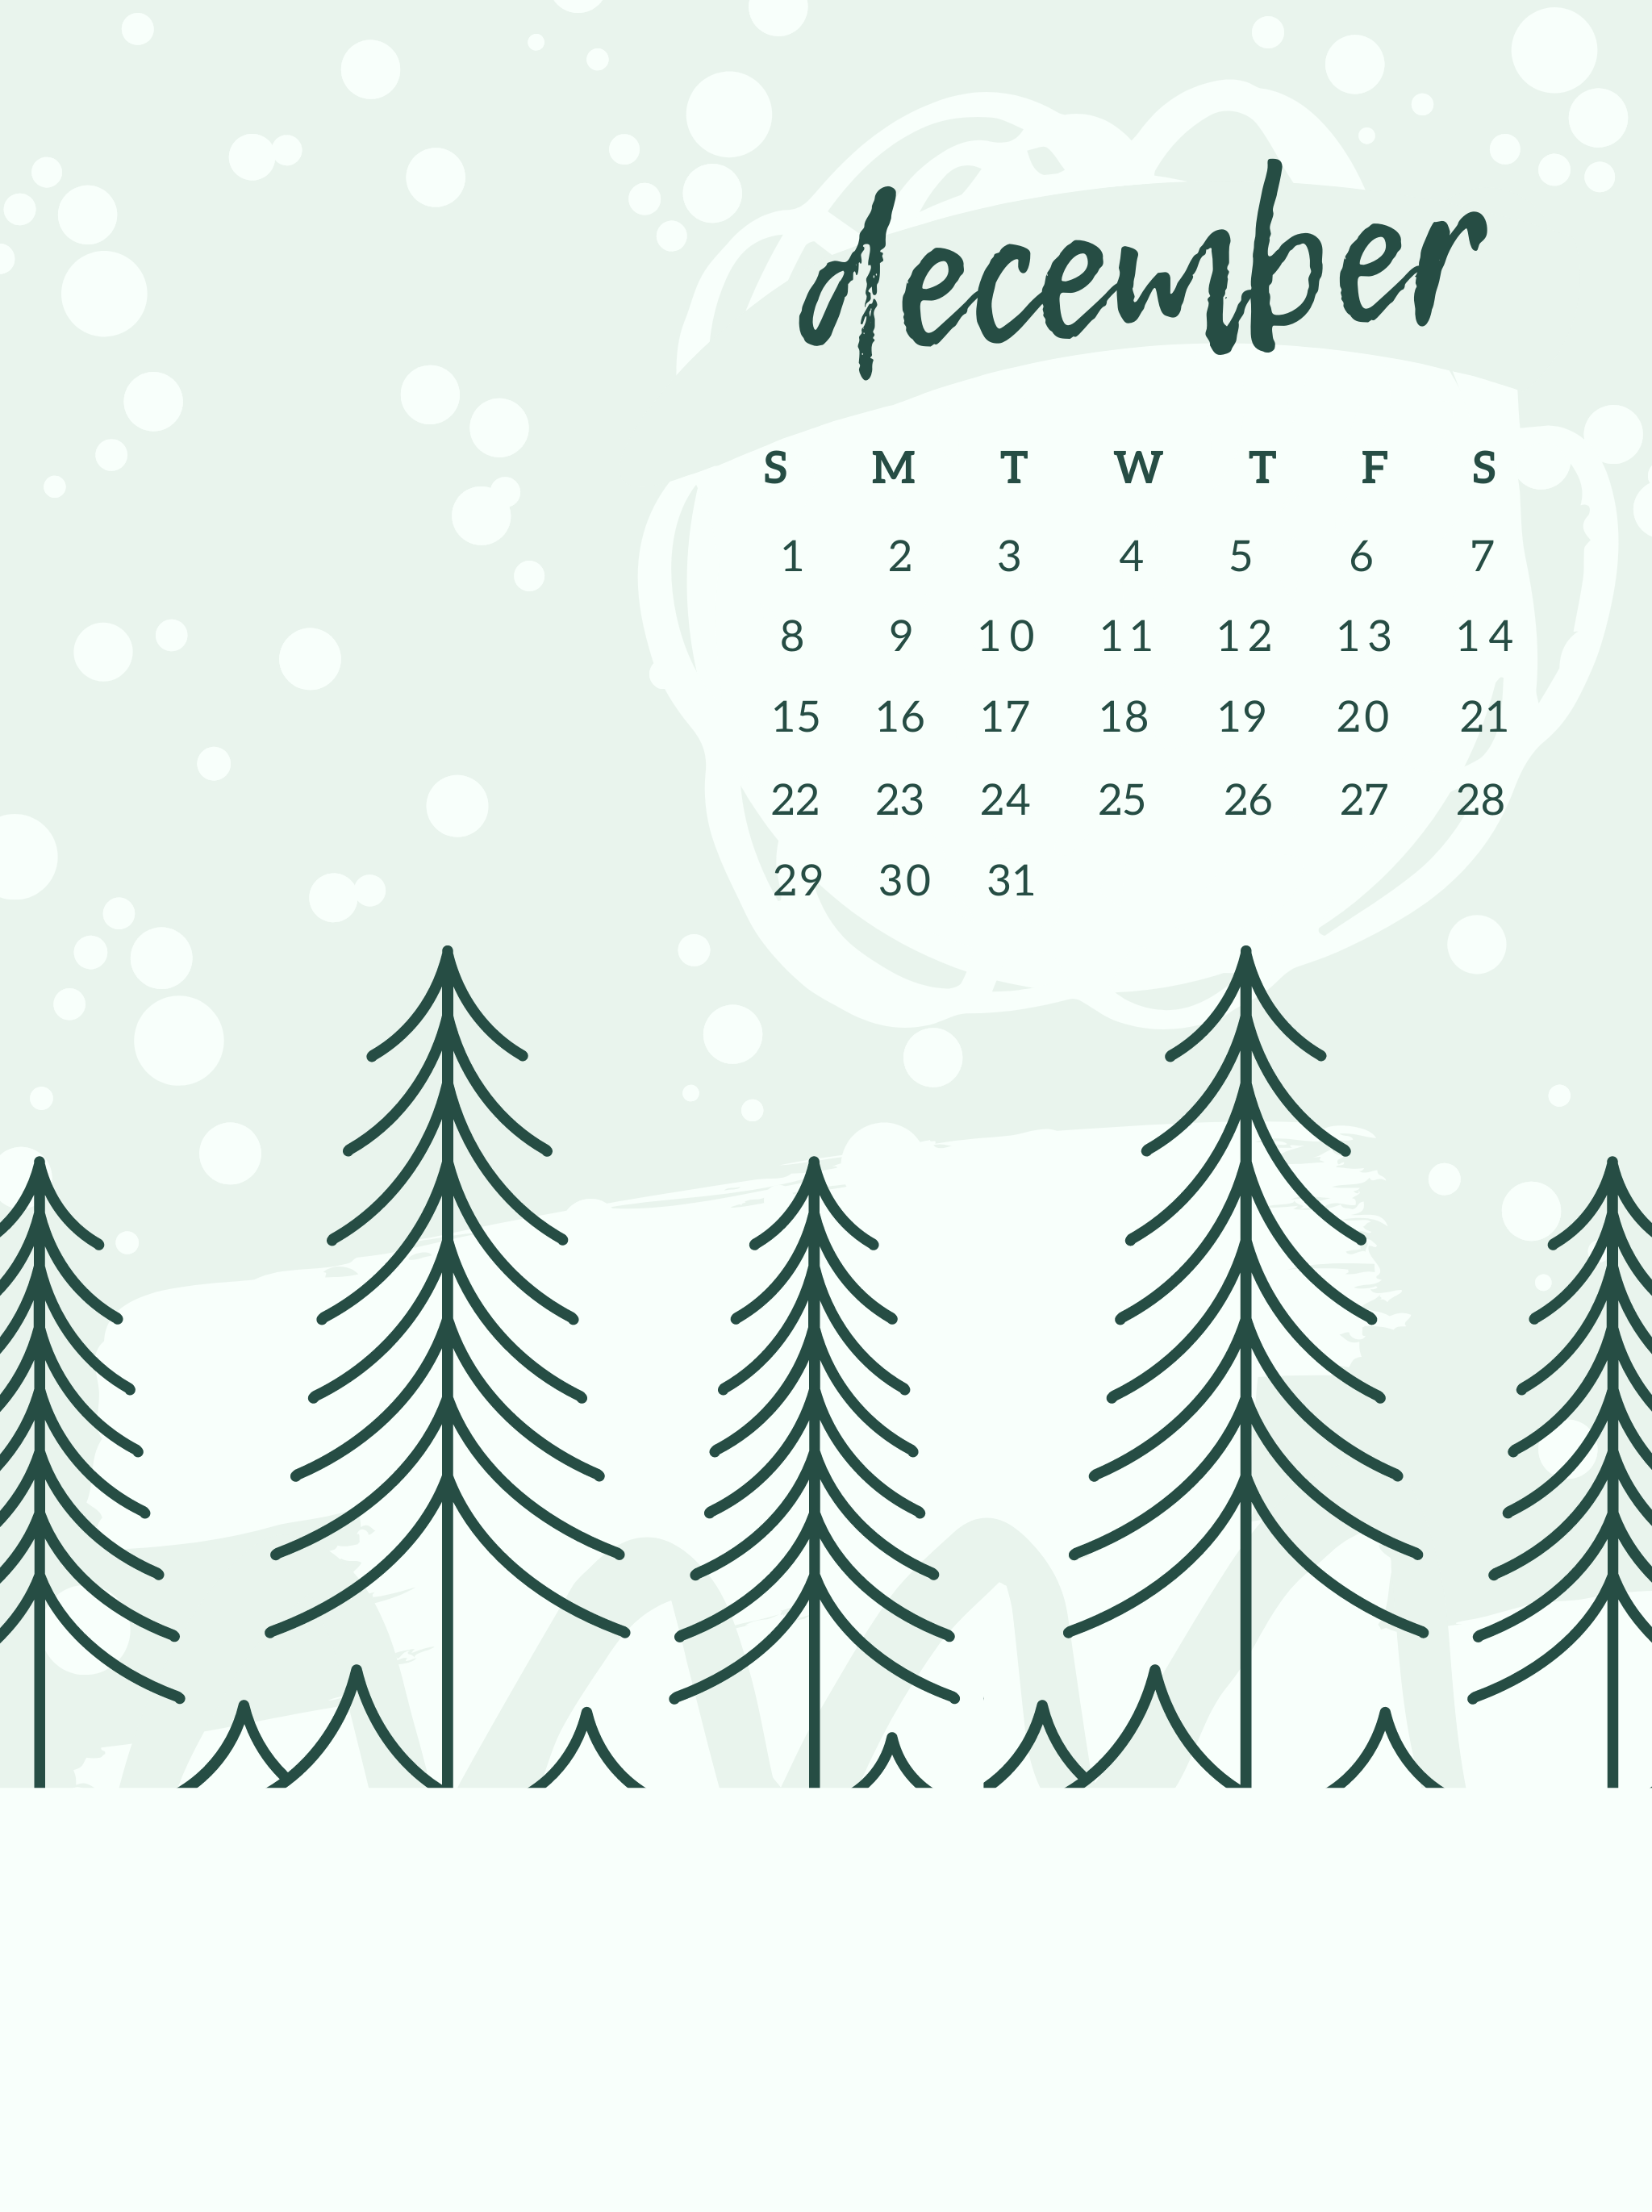 Downloadable Iphone And Ipad Wallpapers For December Ipad Pro Wallpaper Ipad Wallpaper Winter Wallpaper